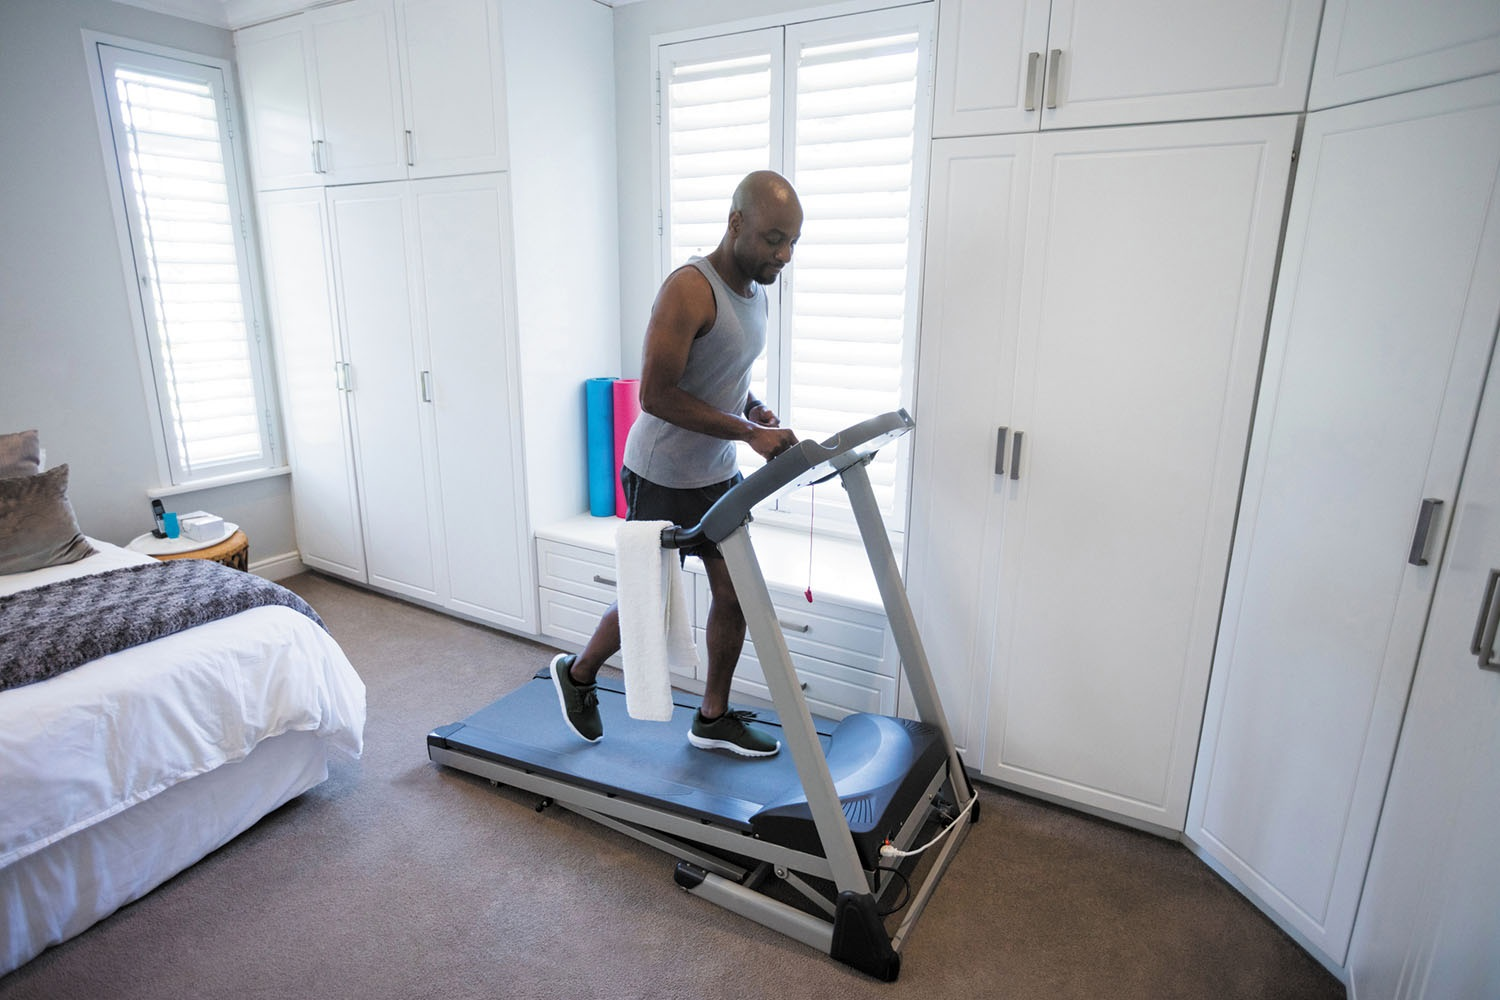 Treadmill or exercise bike: check out personal trainer tips